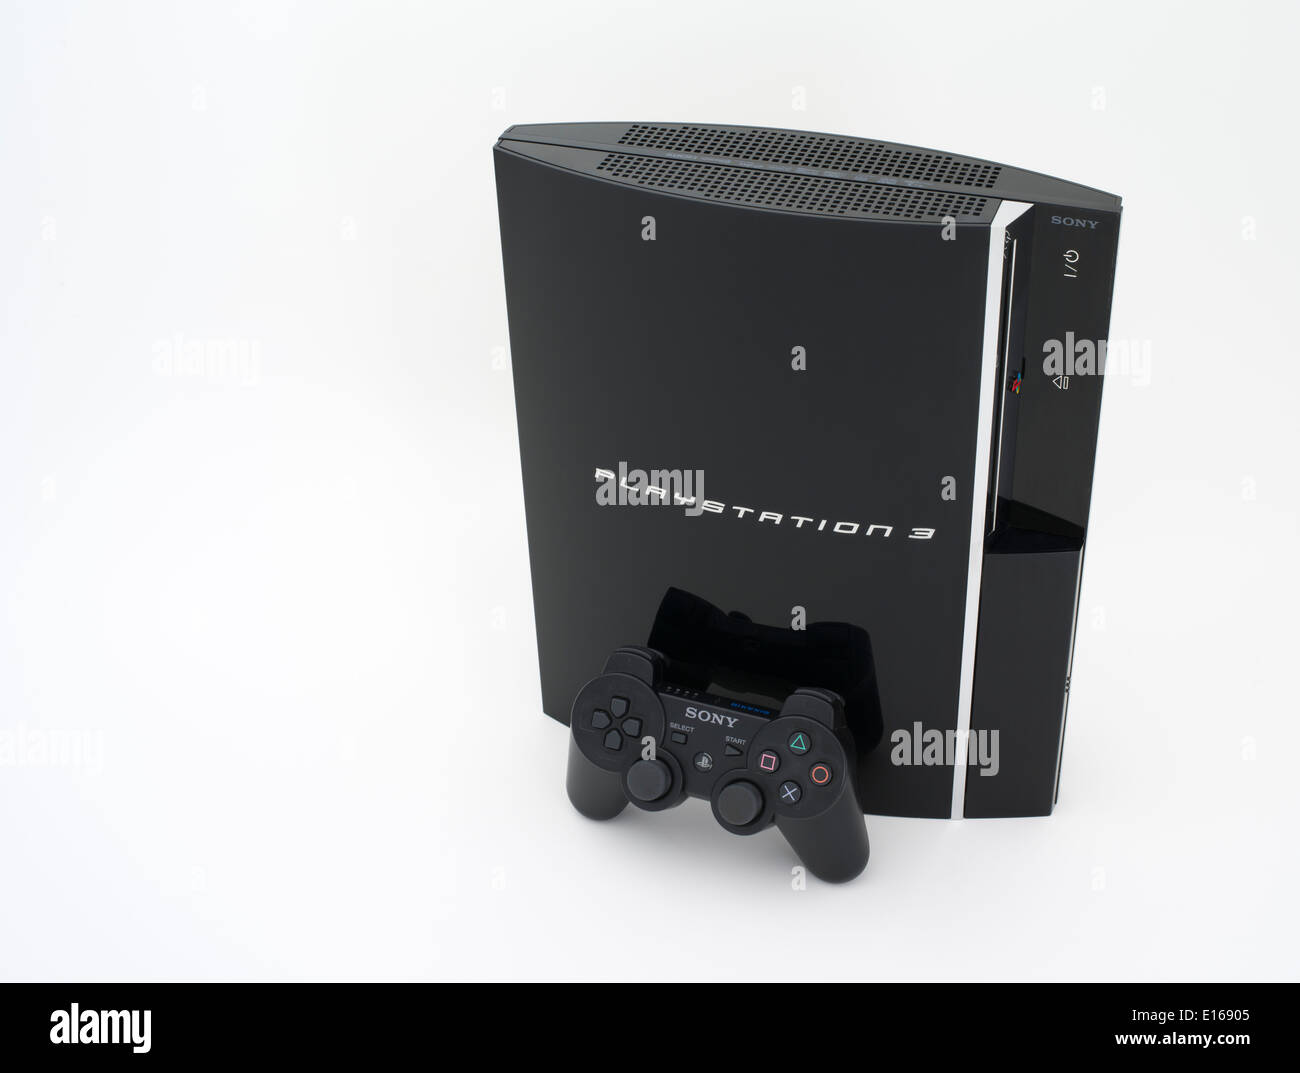 Sony PlayStation 3 video game console system released Japan 11/ 11/ 2006 - Stock Image